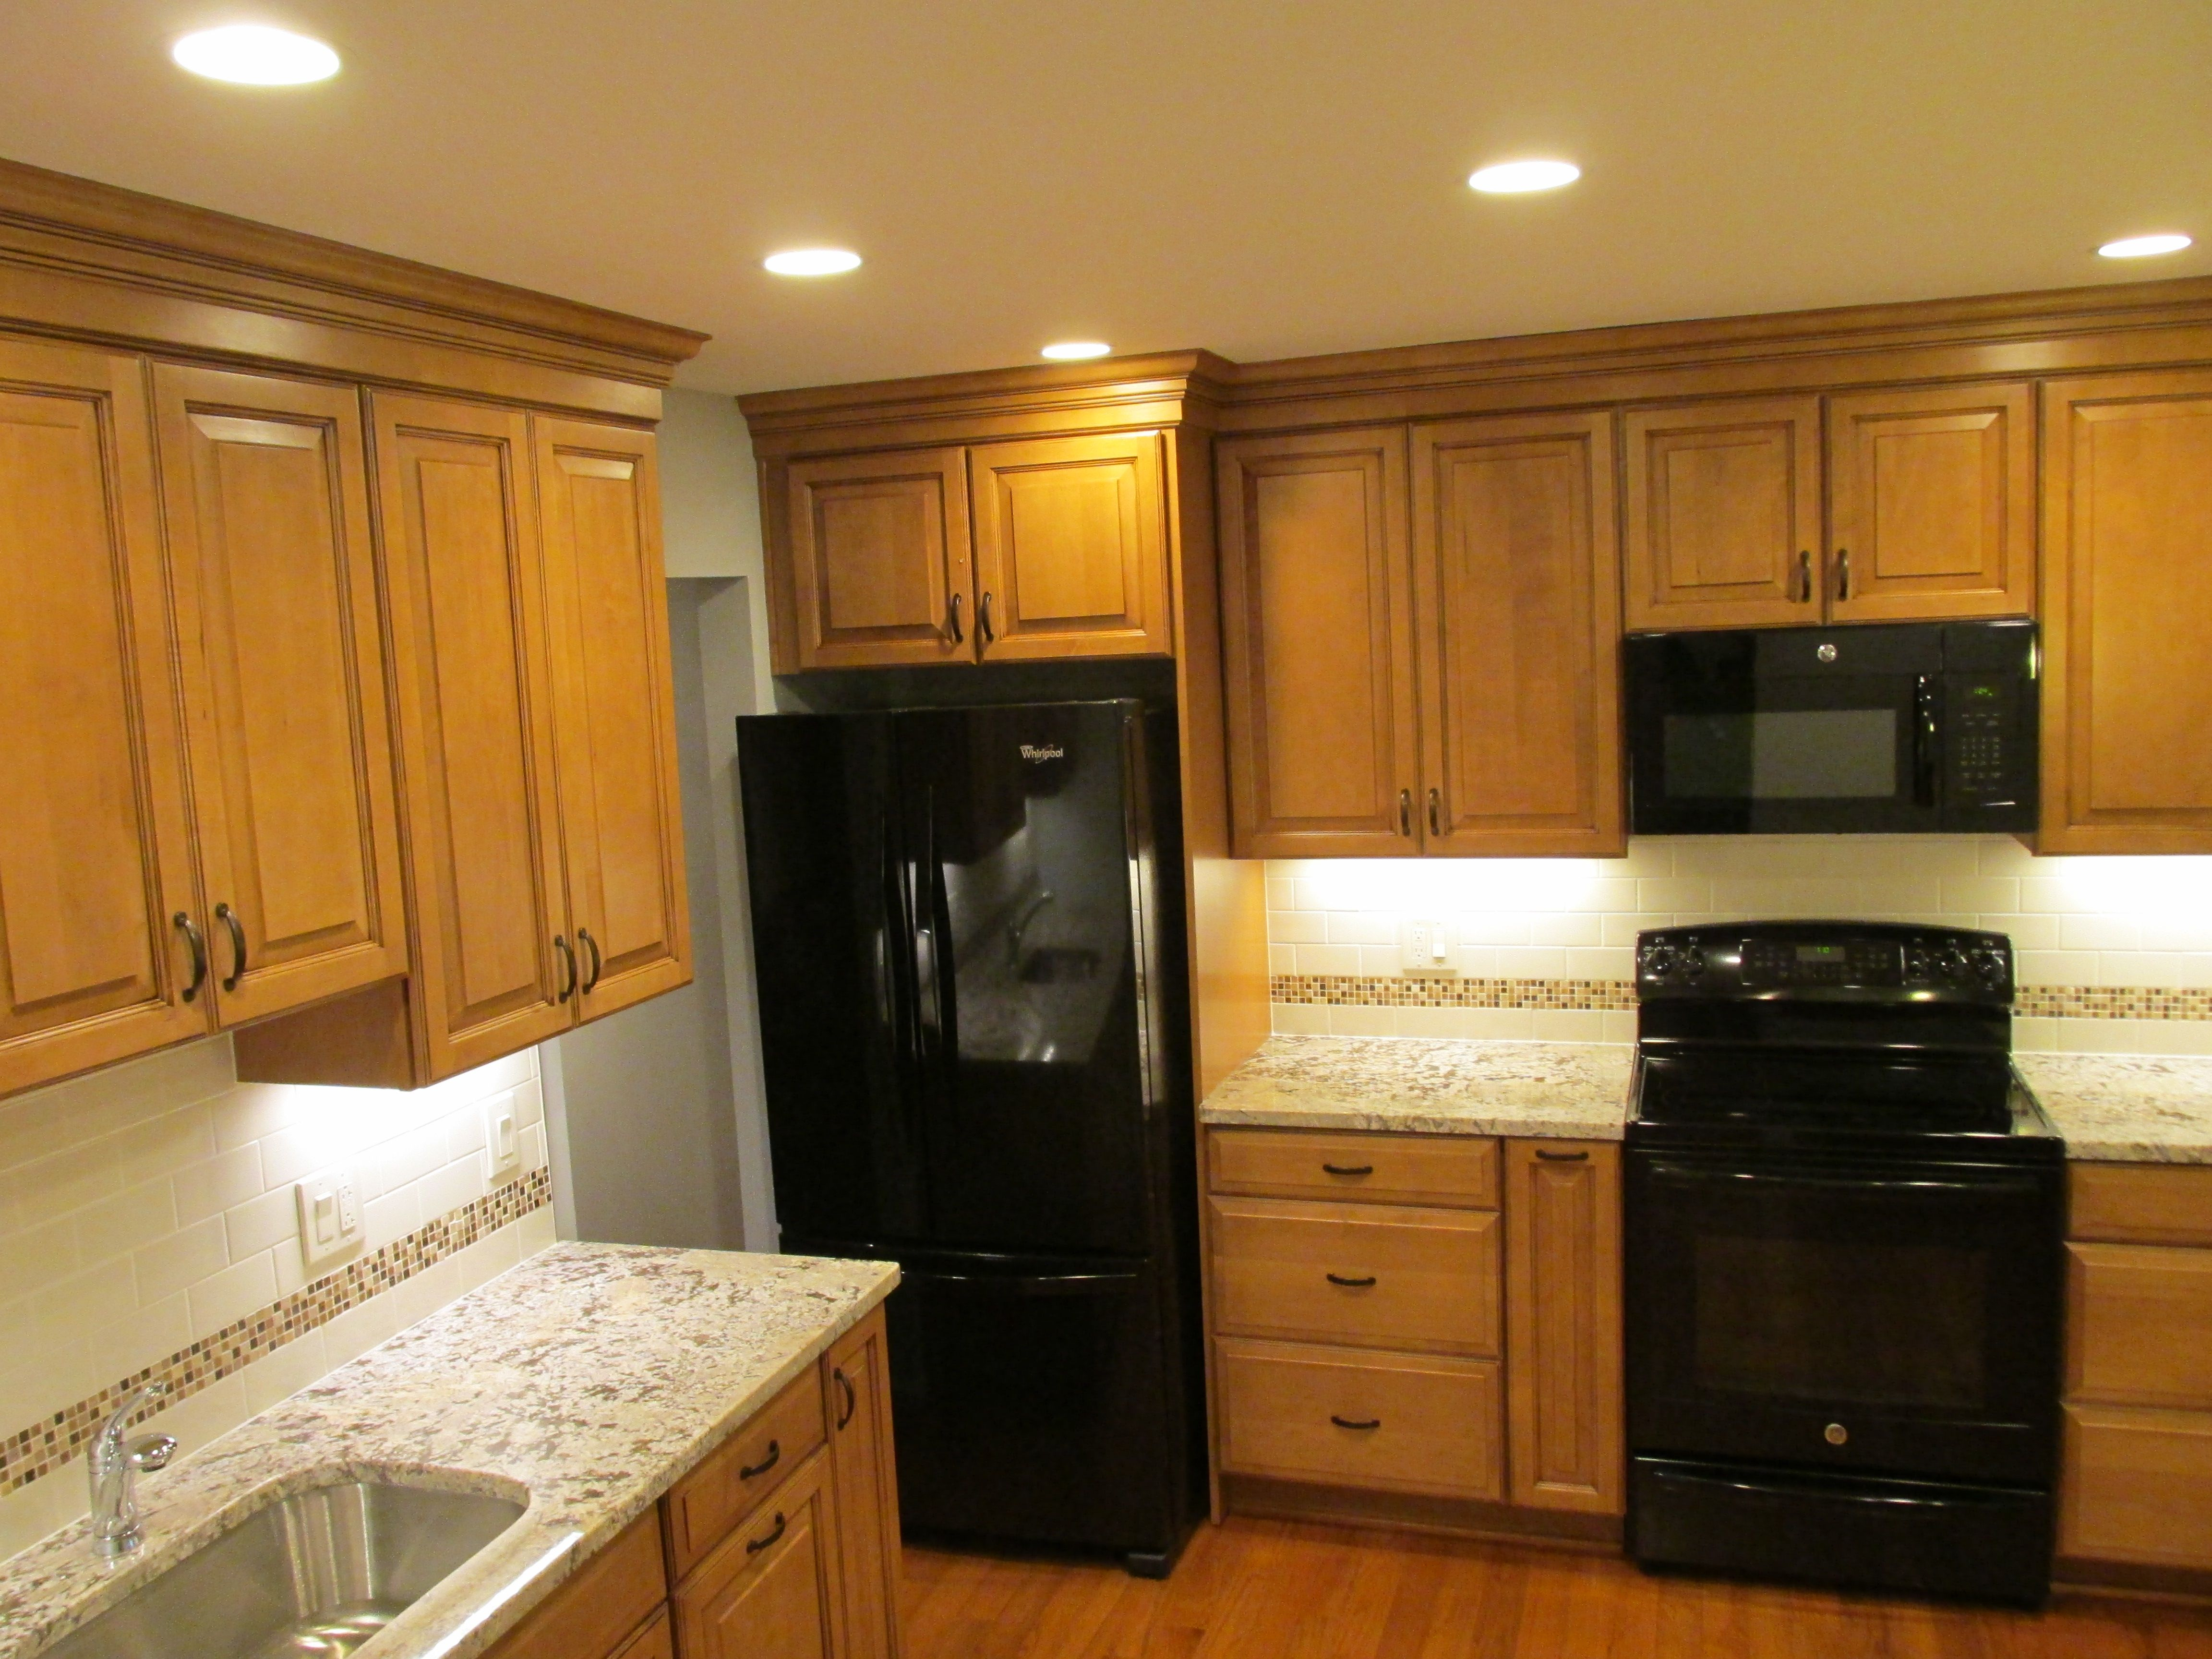 This Is A Complete Remodeling Kitchen With Bruce Manchester Hardwood We Combined Maple Black Appliances Kitchen Kitchen Cabinet Colors Modern Bathroom Design